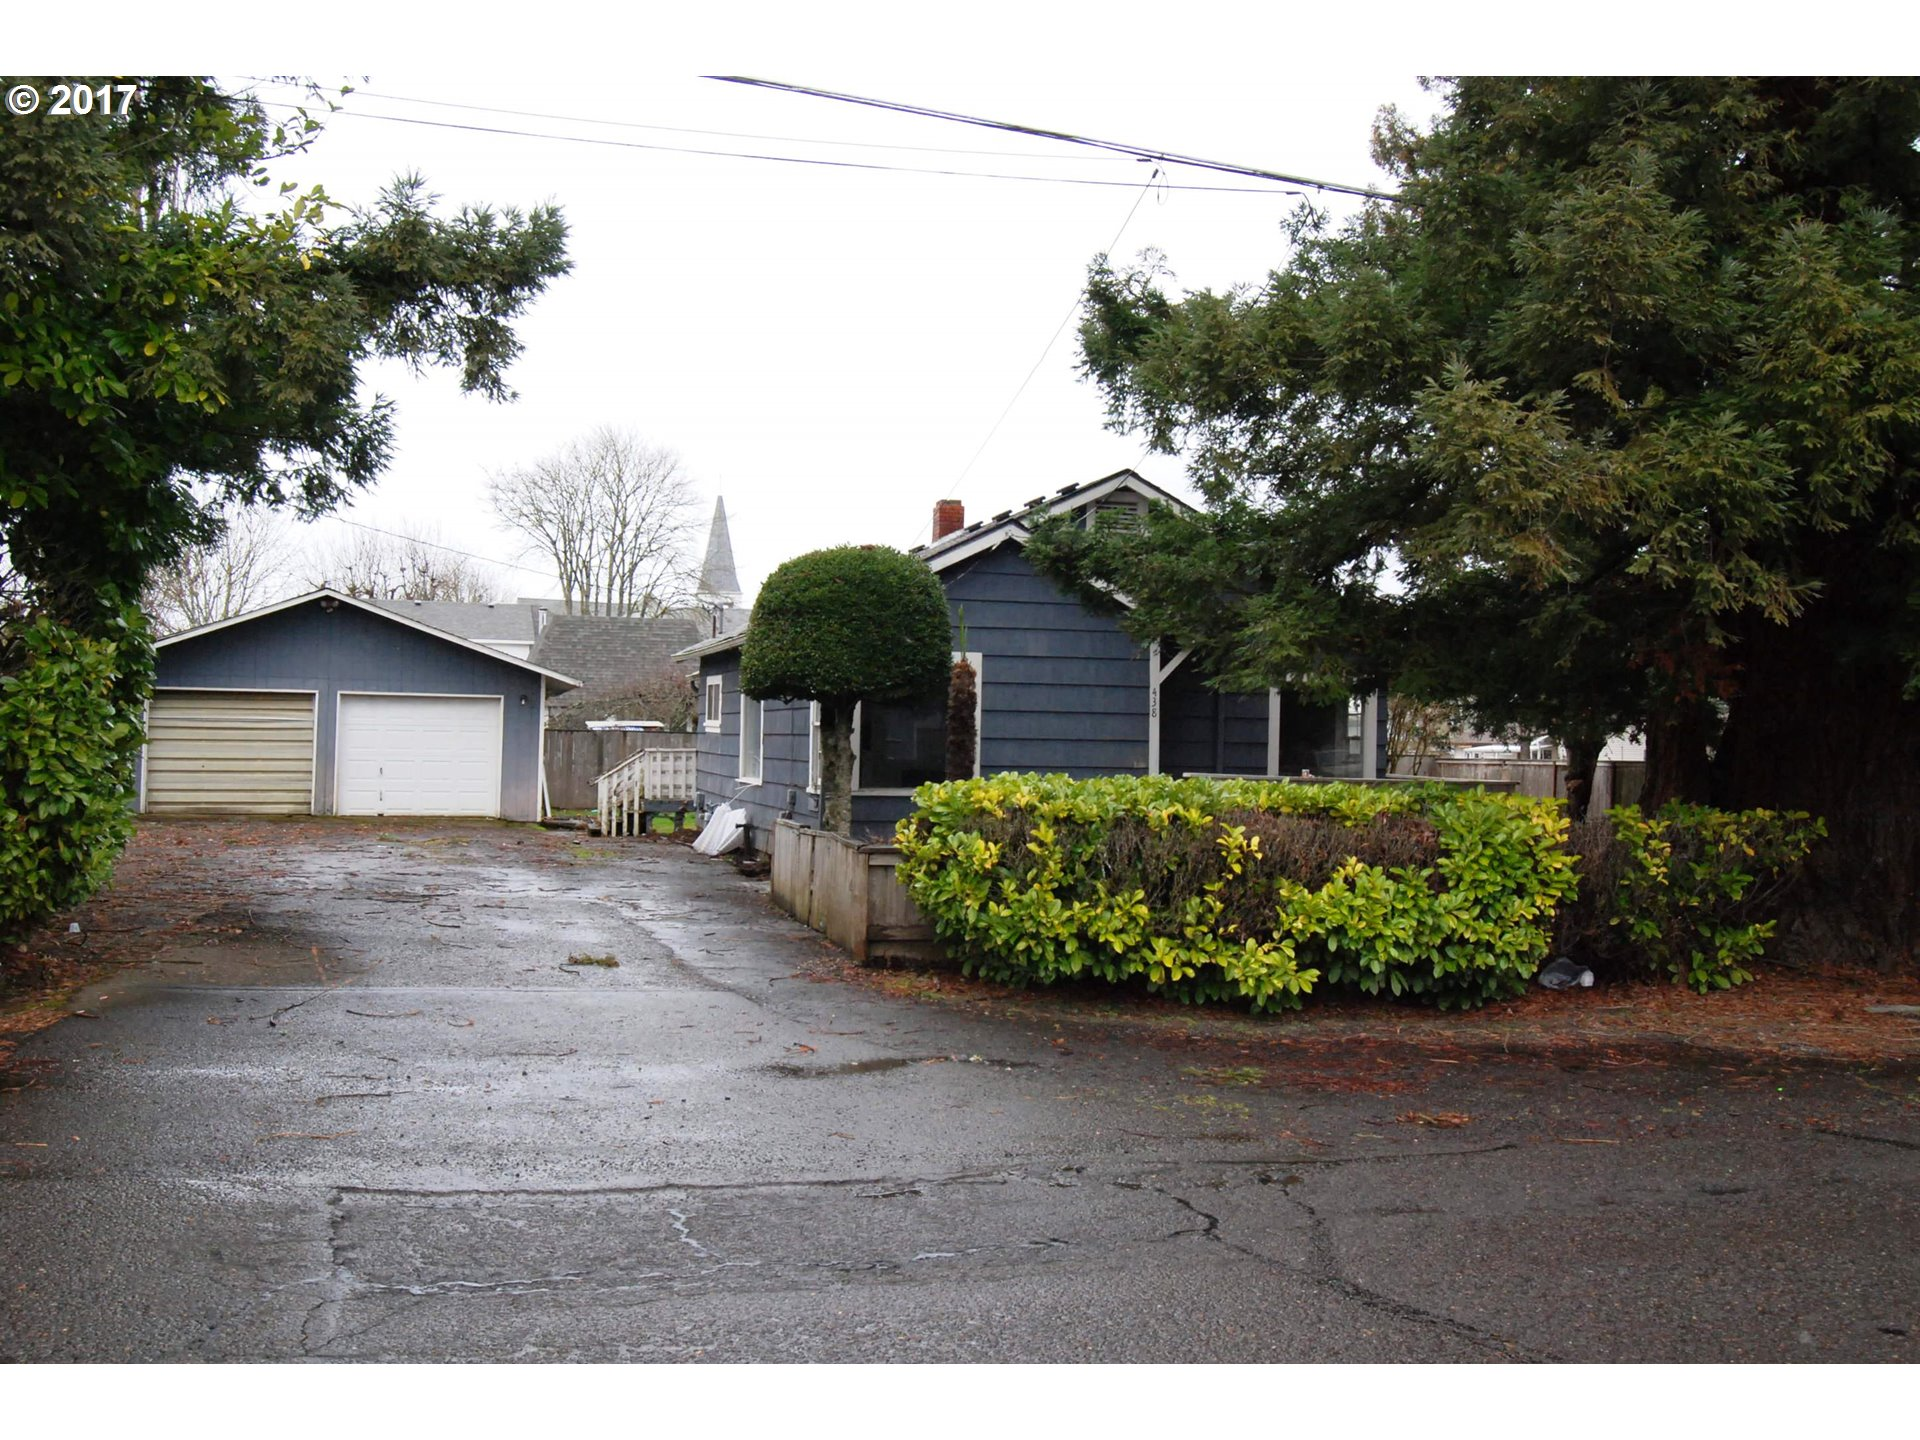 438 D ST, Creswell, OR 97426